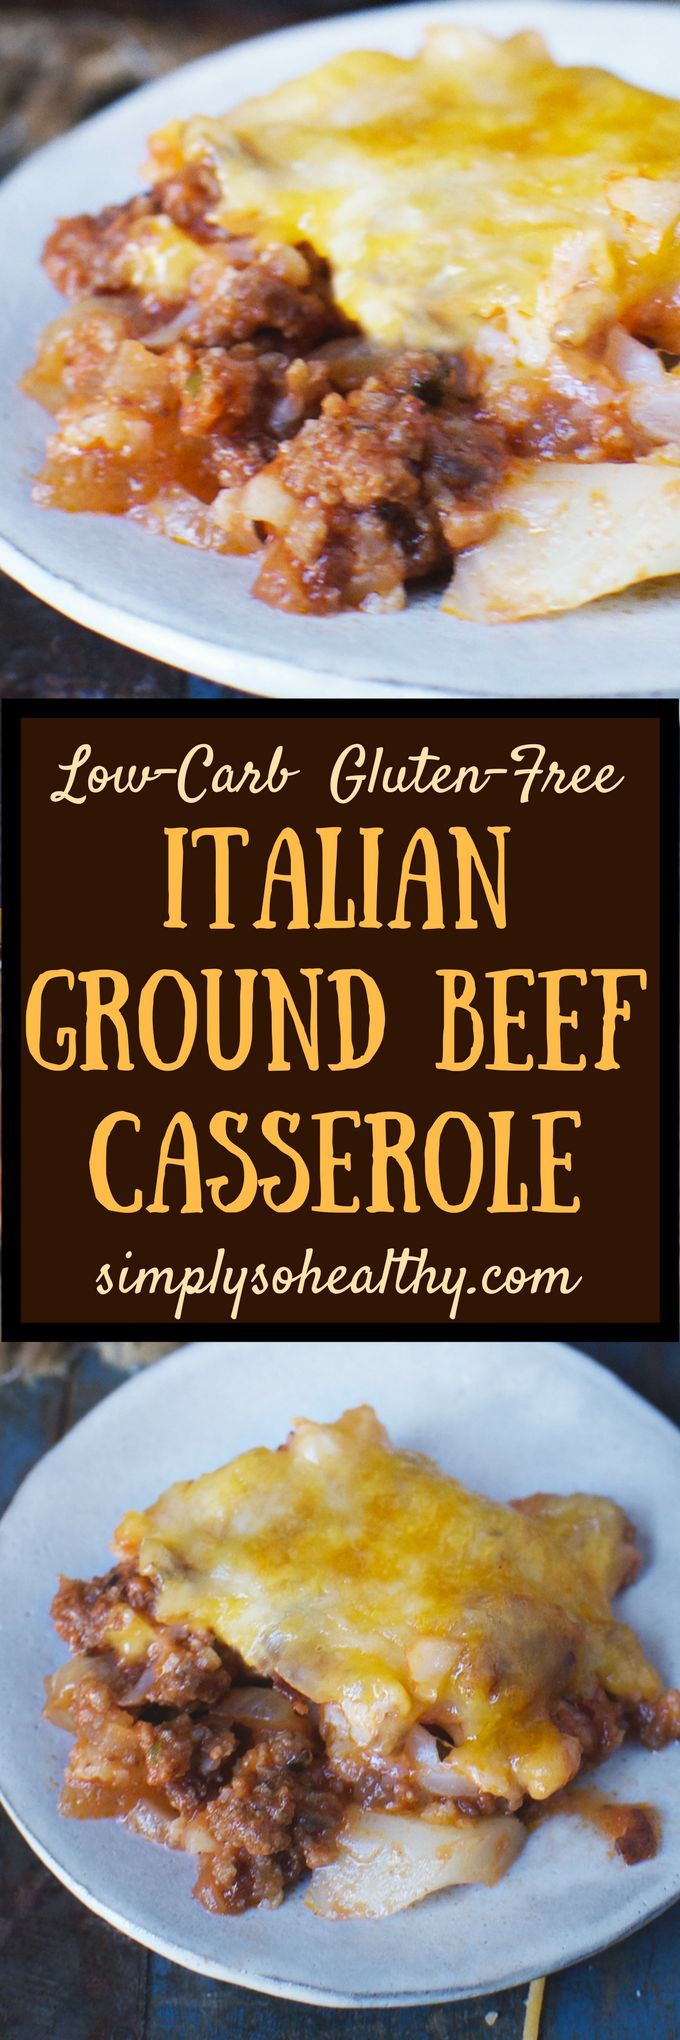 This Keto-friendly Italian Ground Beef Casserole Recipe makes a meal even the kids will love! It's suitable for low-carb, ketogenic, Atkins, diabetic, LC/HF, and Banting diets. This casserole is a grown-up version of Beef-a-roni!